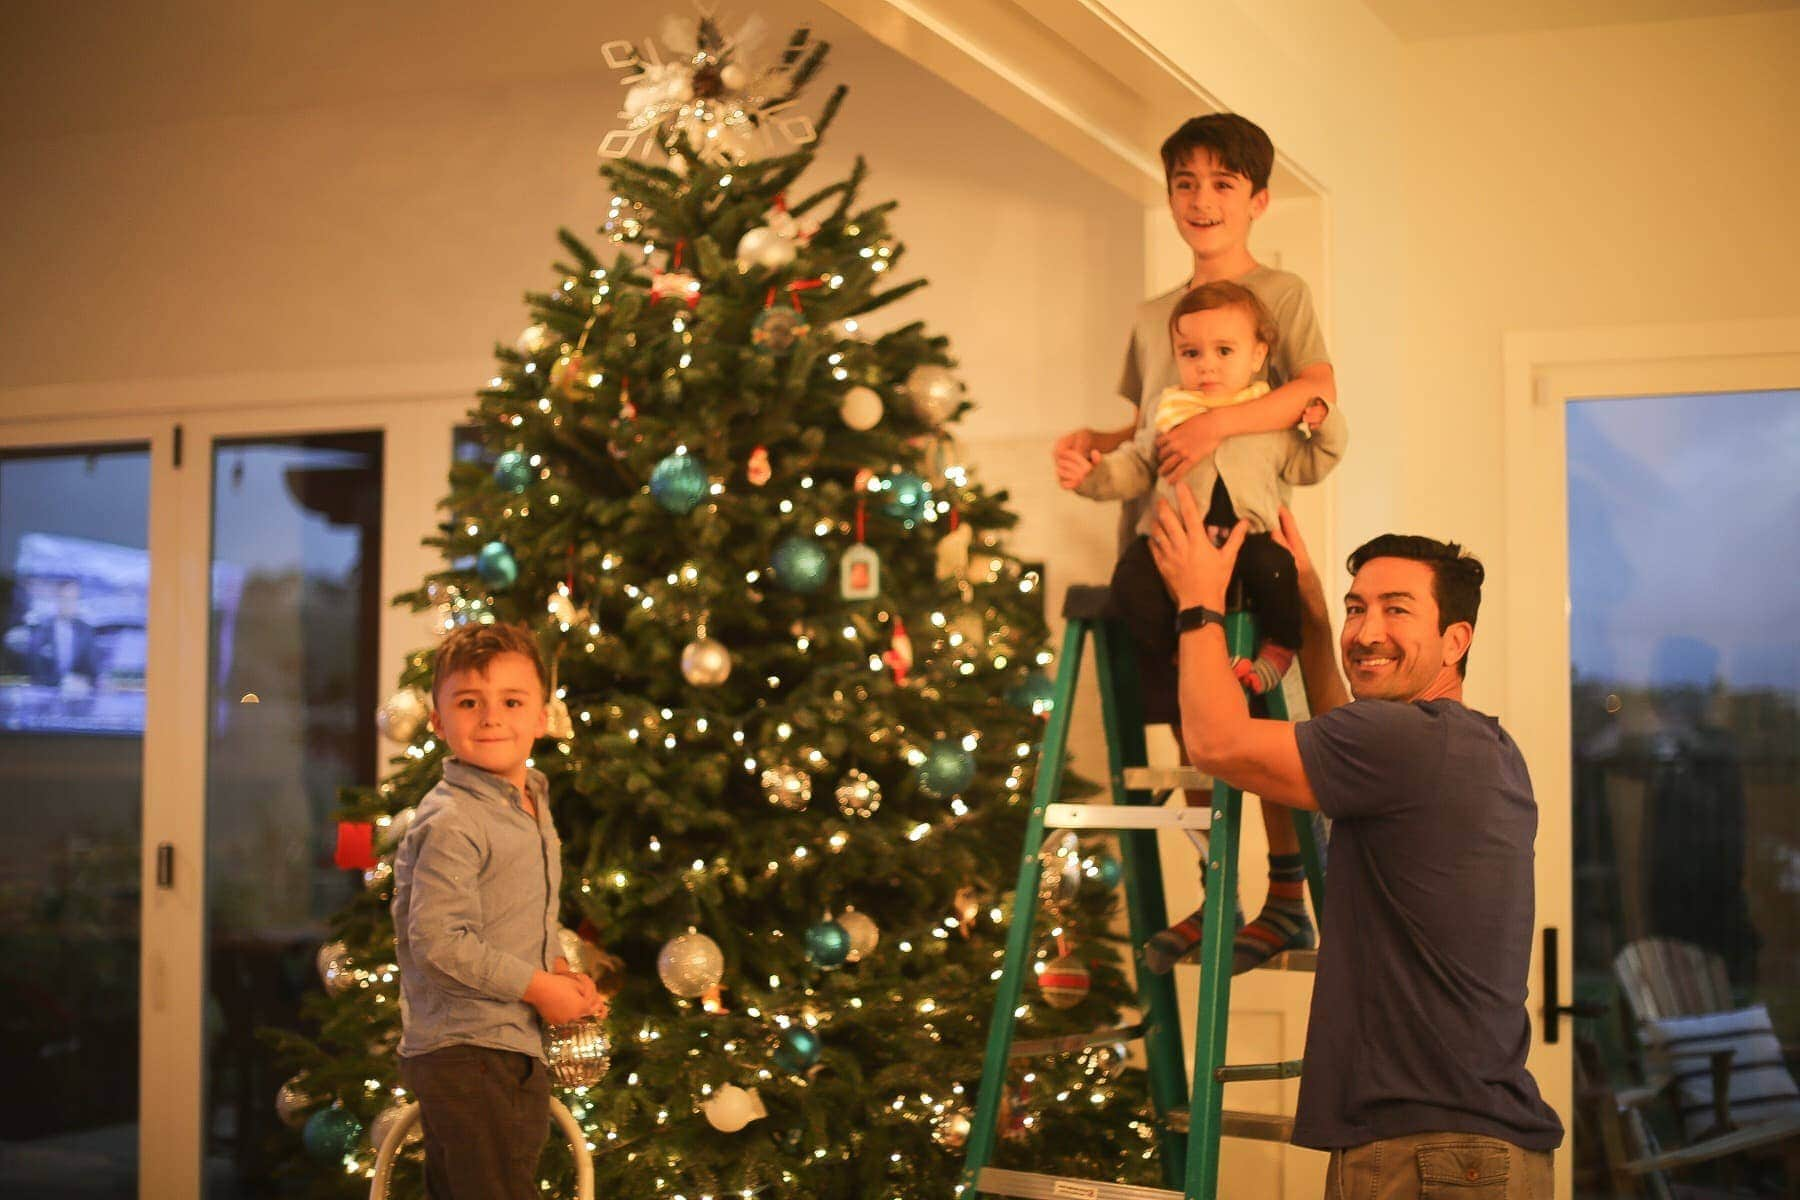 Daddy and his 3 boys decorating the Christmas tree